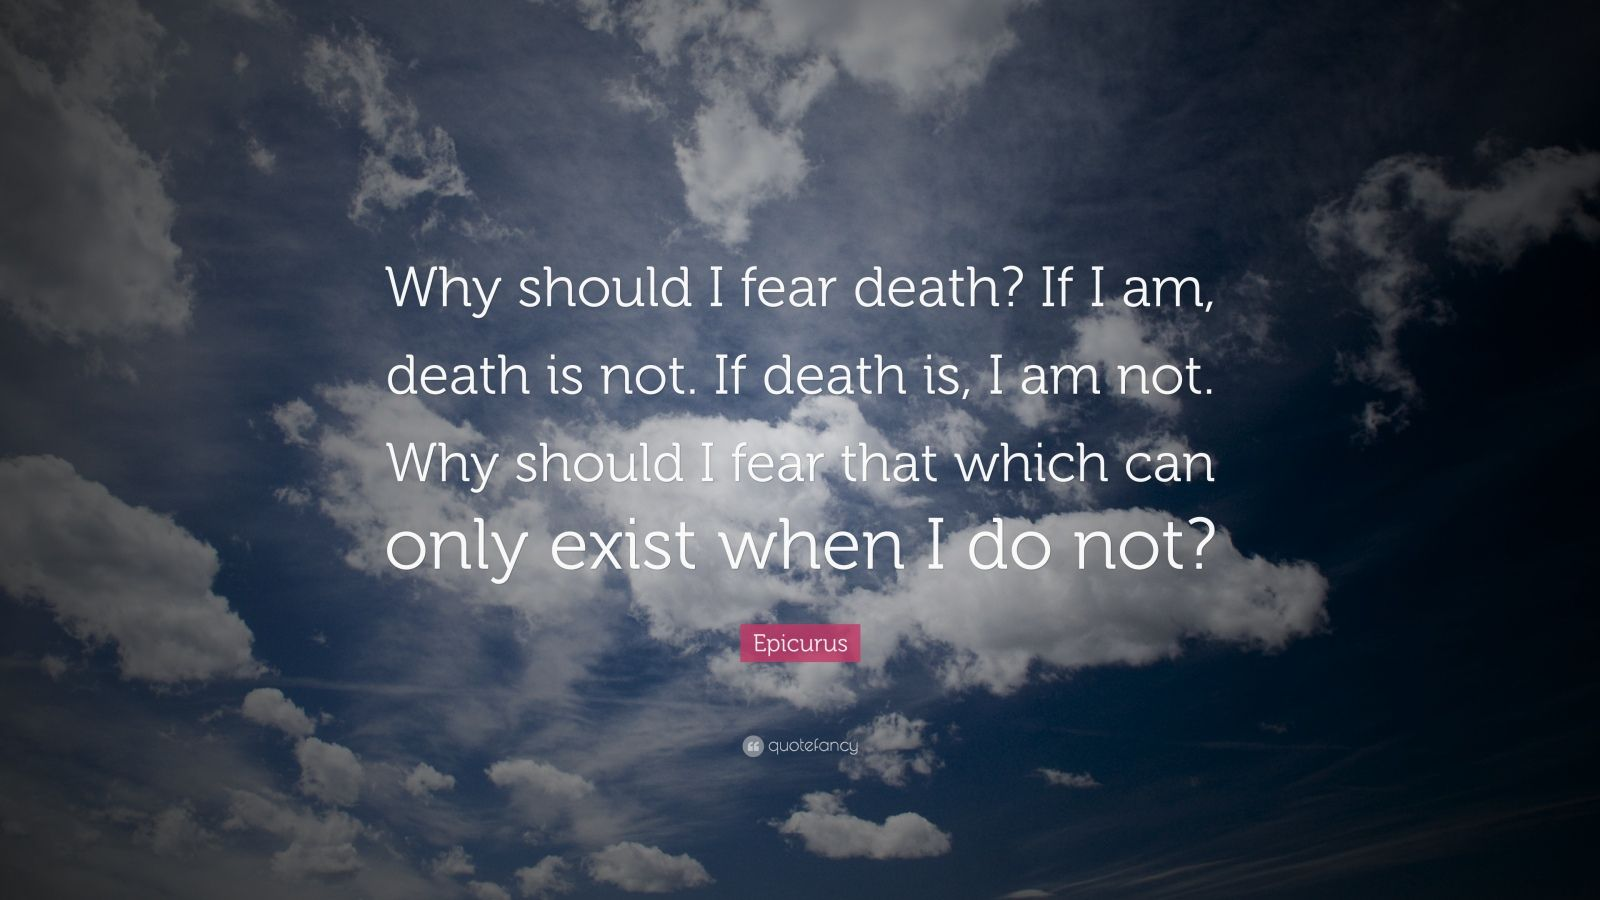 """Epicurus Quote: """"Why should I fear death? If I am, death is not. If death is, I am not. Why should I fear that which can only exist when I do not?"""""""